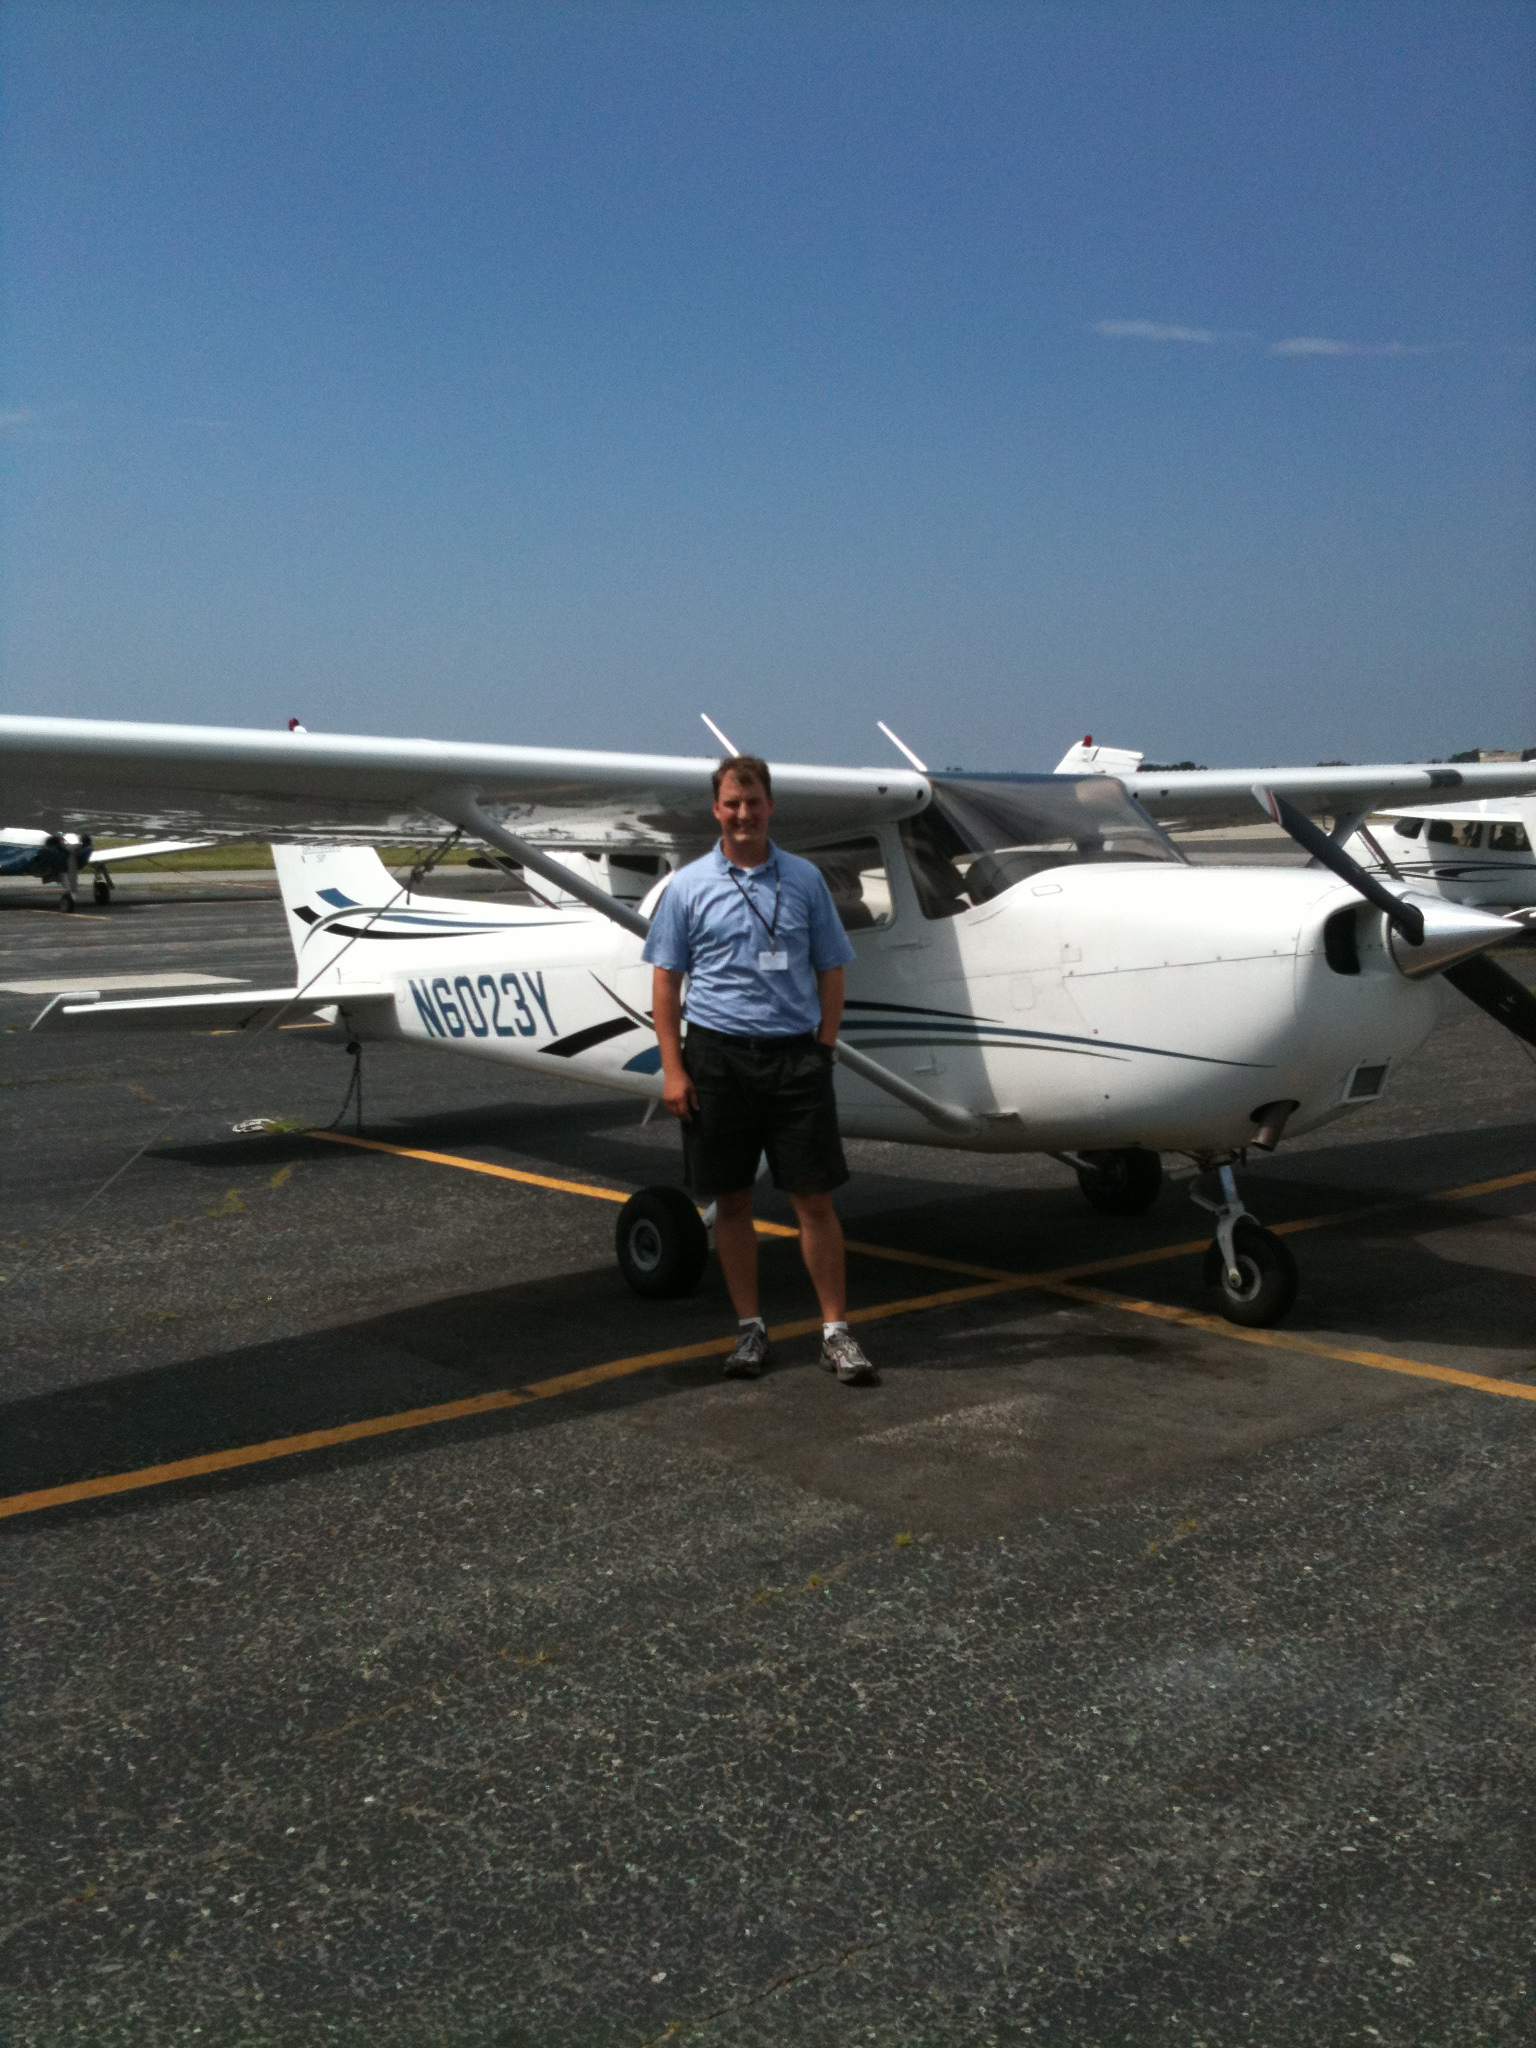 private aviation 101 Dct aviation has a diverse flight training program that can fullfill all your goals  from private pilot to multi-engine atp learn more .